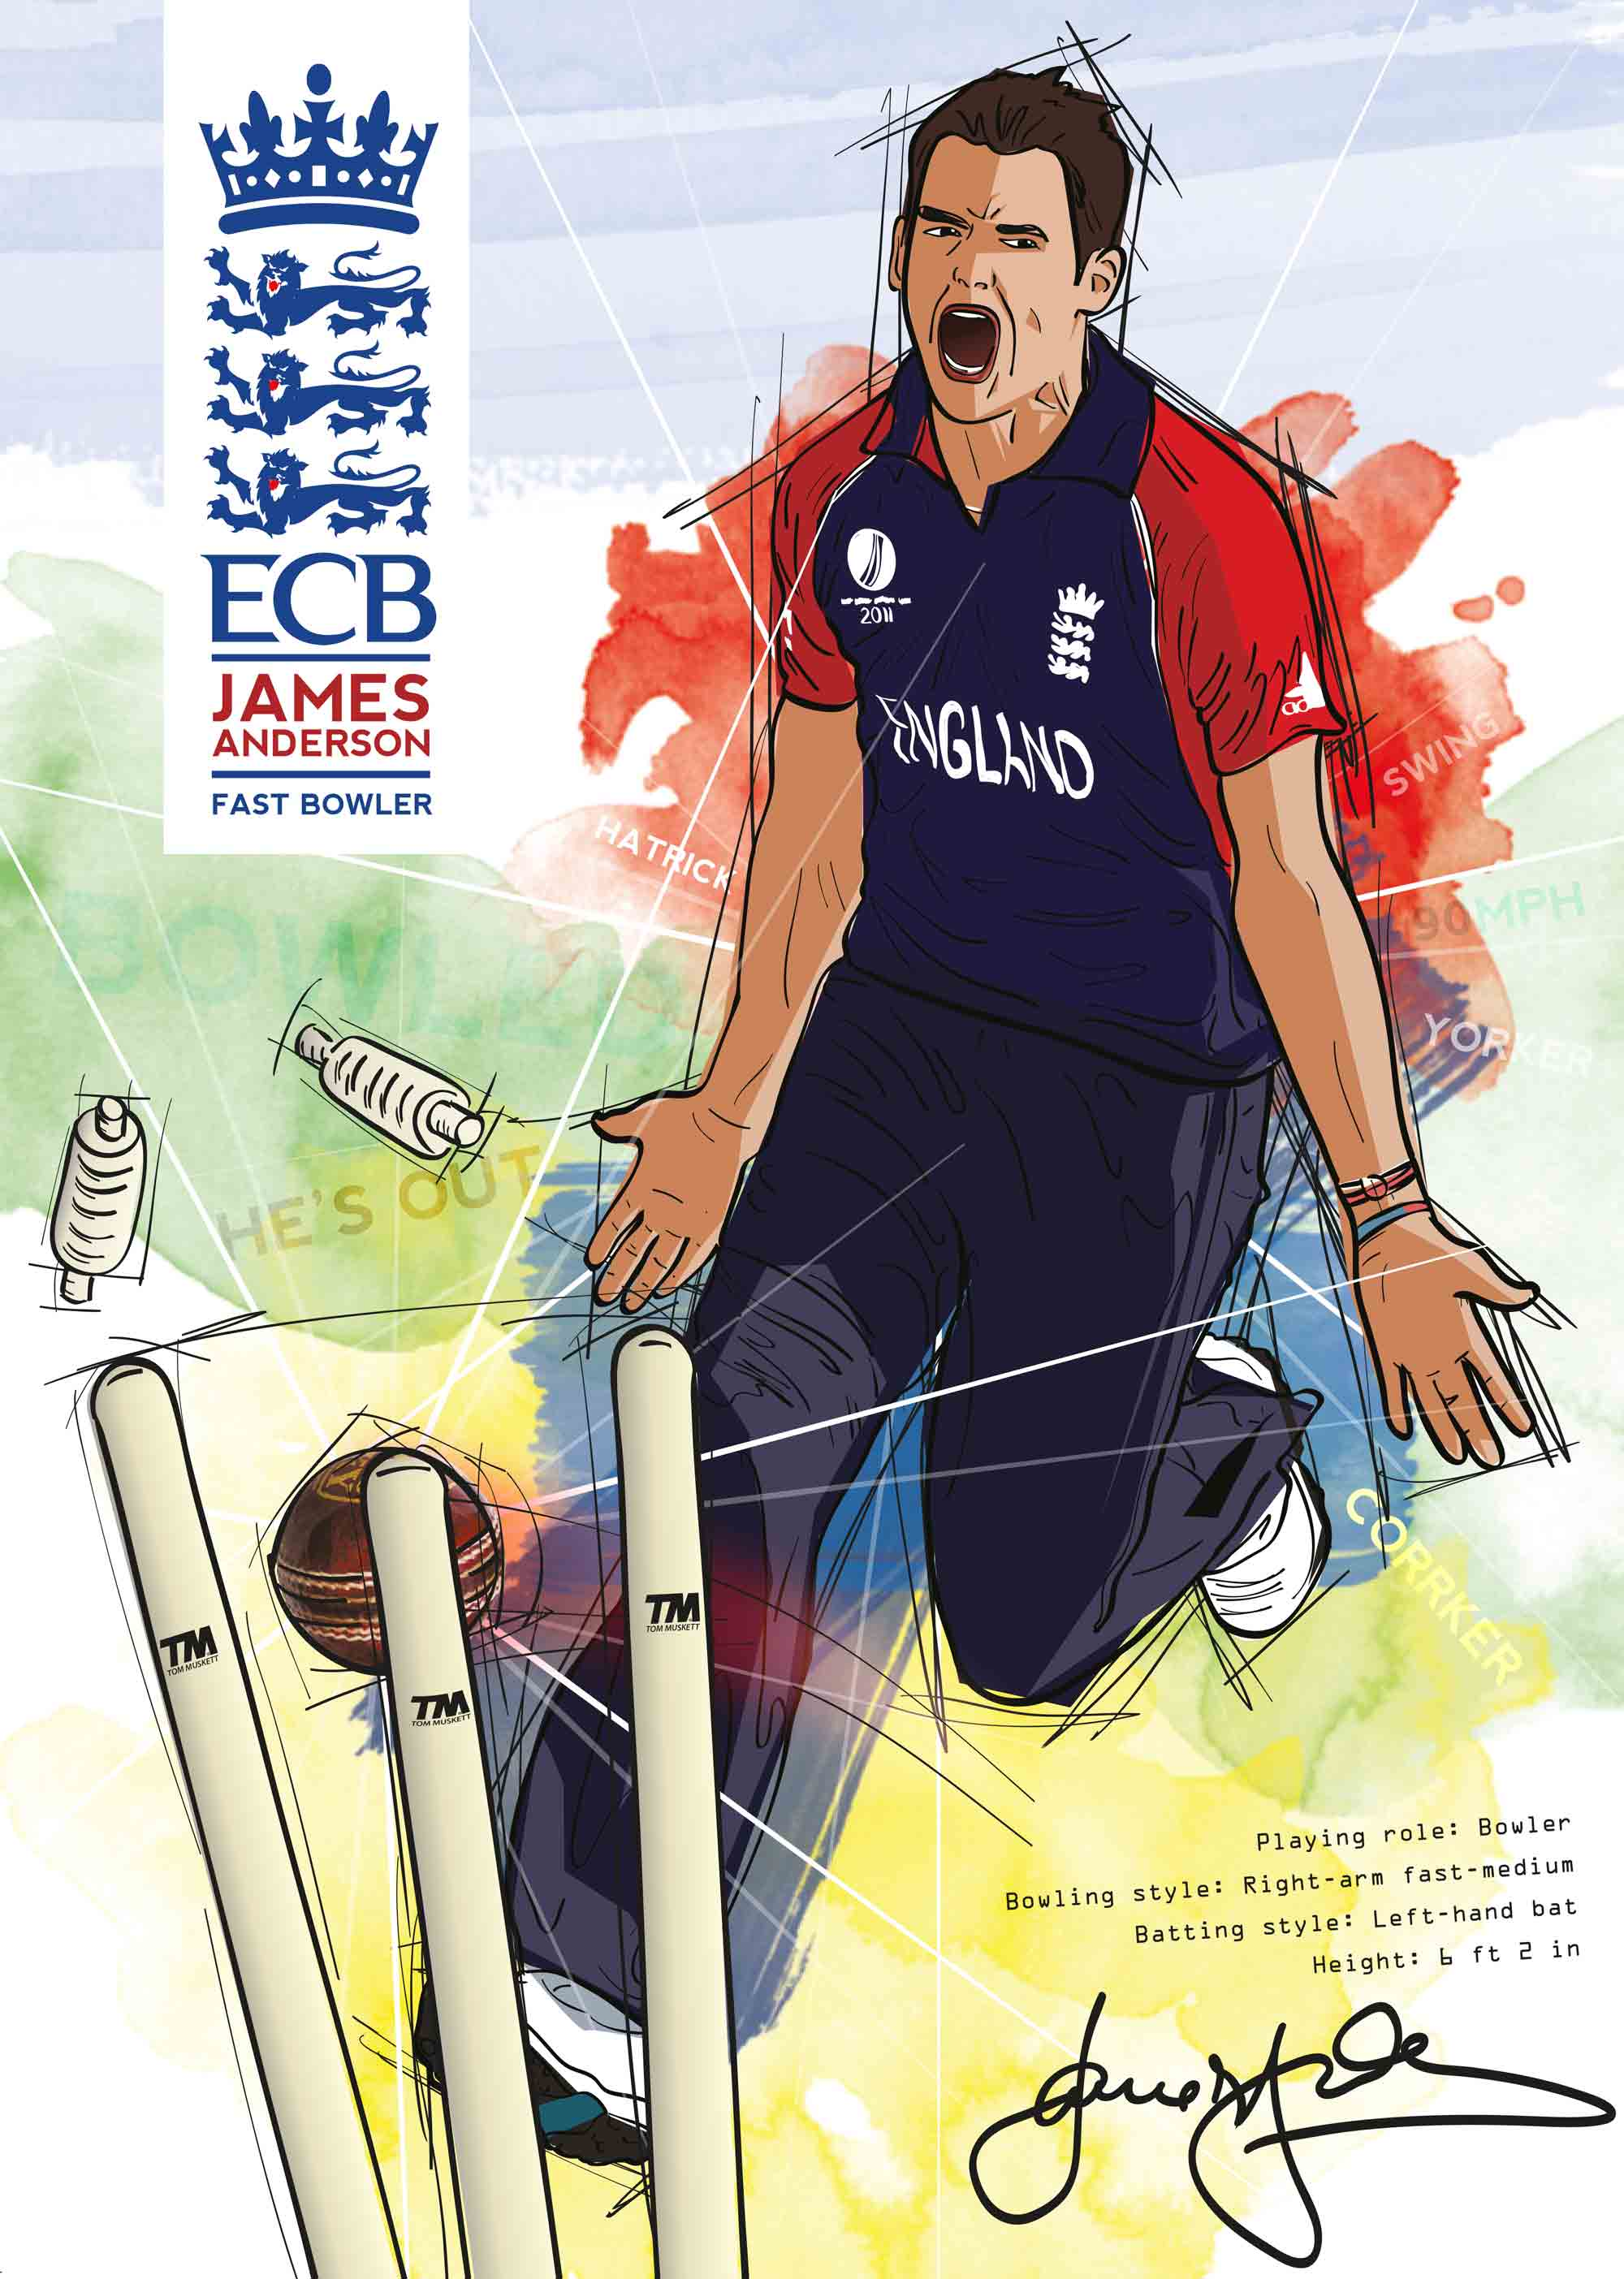 James Anderson cricket poster by Geoff Muskett